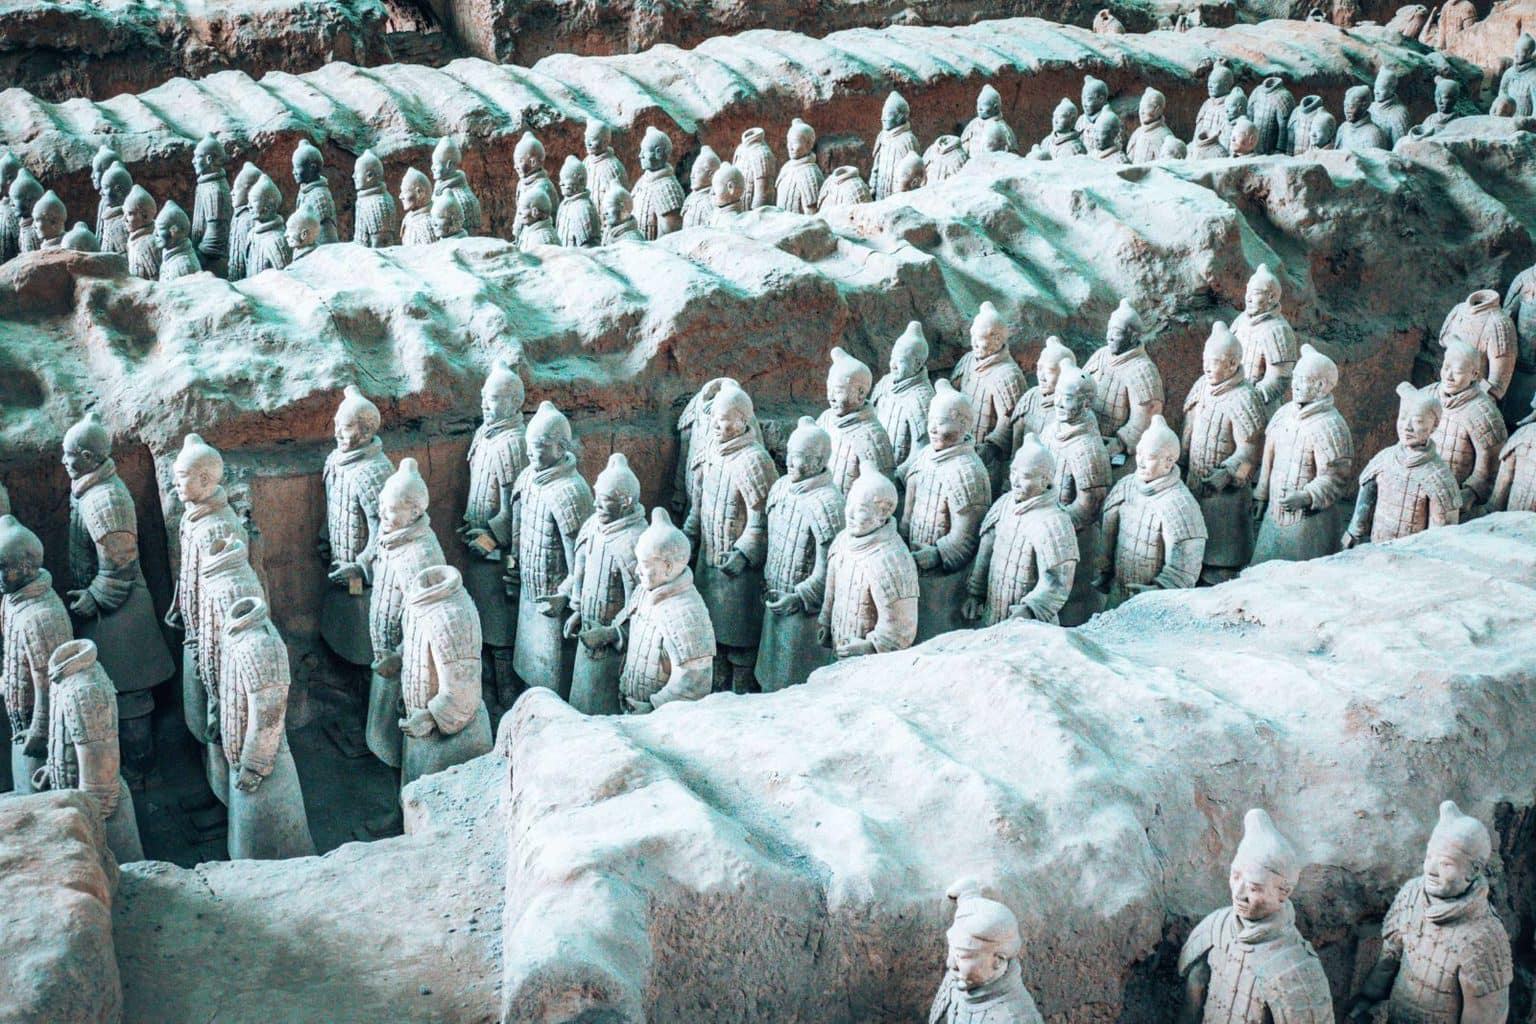 Image of the Terracotta Warriors in Xi'an China